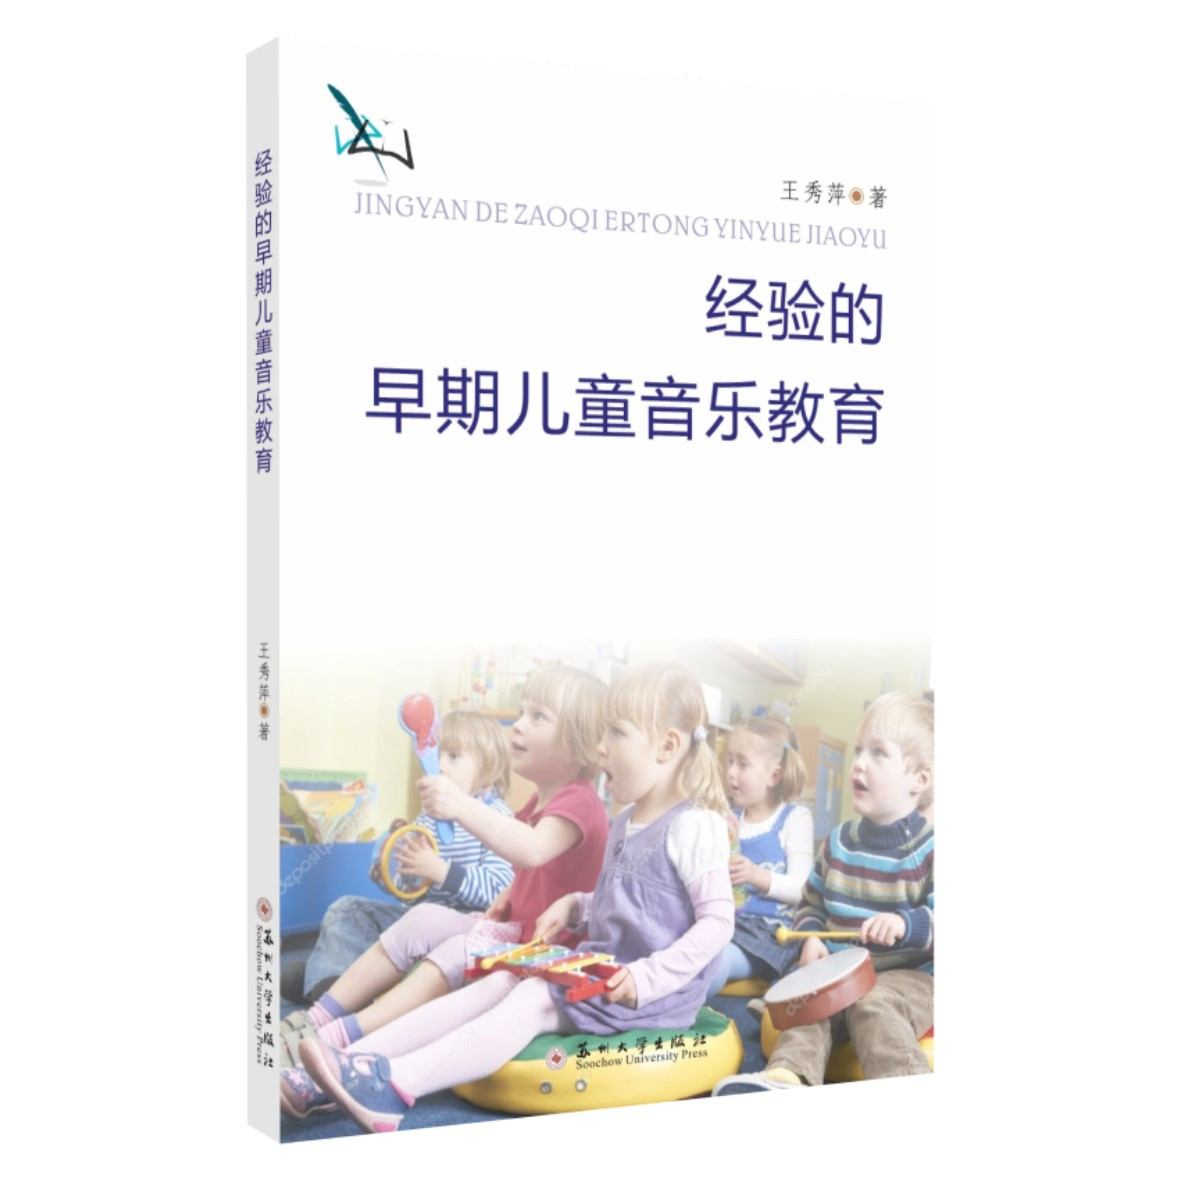 Music education for children in early childhood based on the experience of genuine package mail